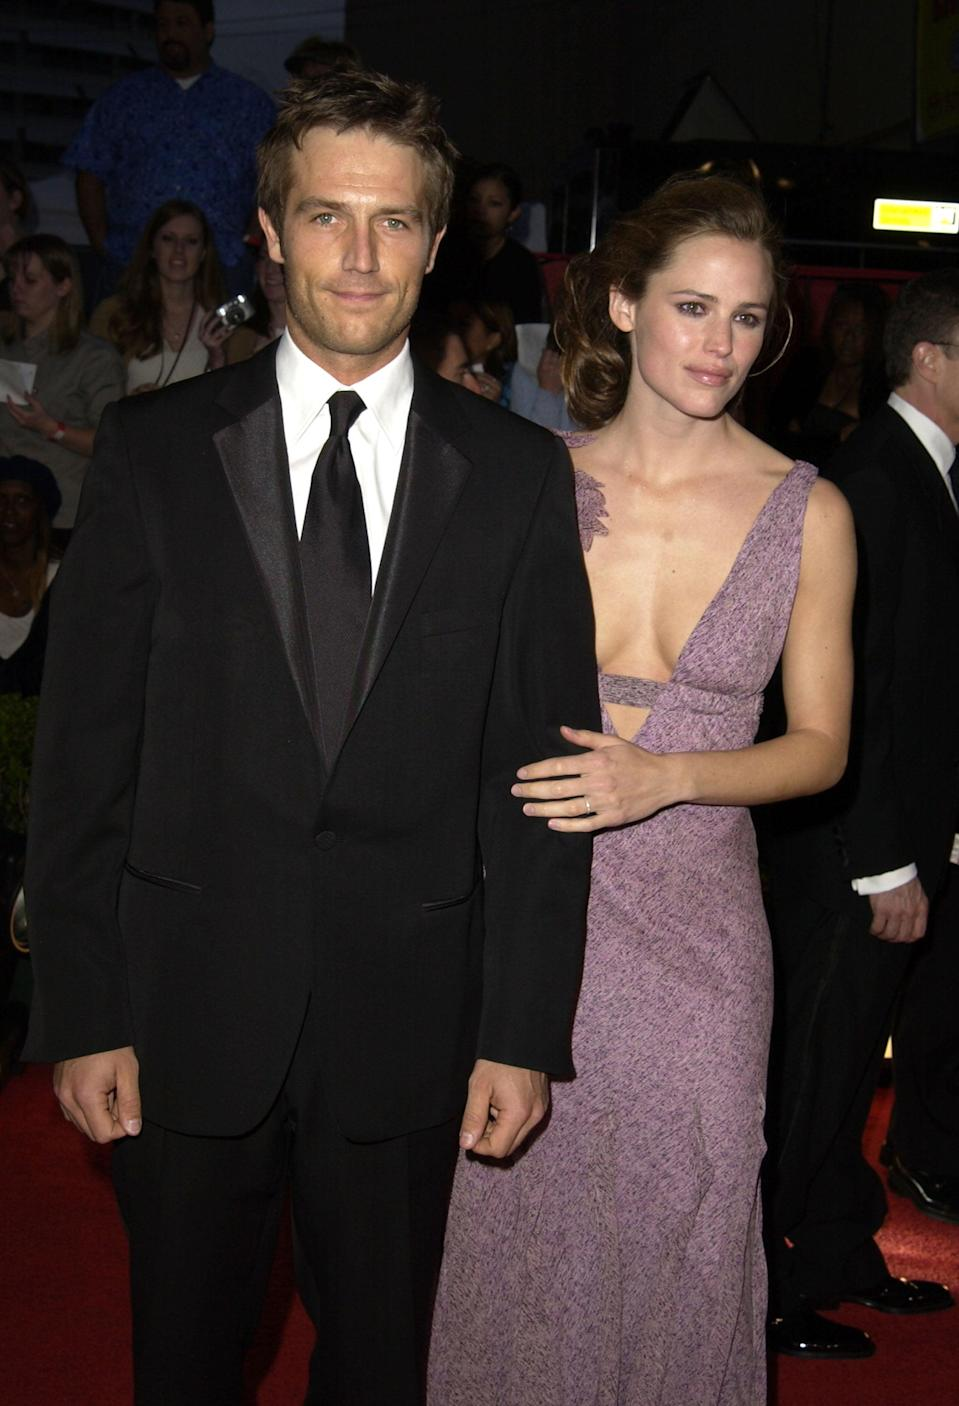 """<p>Jennifer and Michael first met on the set of <strong>Alias </strong>in 2001, though they didn't start dating until two years later. Their relationship only lasted until 2004, and the two both remained on the show - playing lovers Sydney and Michael - until its finale in 2006. </p> <p>In 2005, Michael told <strong>USA Today</strong> that <a href=""""http://usatoday30.usatoday.com/life/people/2005-05-12-vartan_x.htm"""" class=""""link rapid-noclick-resp"""" rel=""""nofollow noopener"""" target=""""_blank"""" data-ylk=""""slk:their breakup was &quot;benign&quot;"""">their breakup was """"benign""""</a> and that he and Jennifer decided they were """"better off as friends."""" They were so close that Jennifer even told Michael about her engagement to <a class=""""link rapid-noclick-resp"""" href=""""https://www.popsugar.com/Ben-Affleck"""" rel=""""nofollow noopener"""" target=""""_blank"""" data-ylk=""""slk:Ben Affleck"""">Ben Affleck</a> before the rest of the world found out. """"On the surface, it could have been a recipe for disaster,"""" he said of their on-set relationship following their breakup. """"But Jennifer and I were best friends first, during, and after.""""<br></p>"""